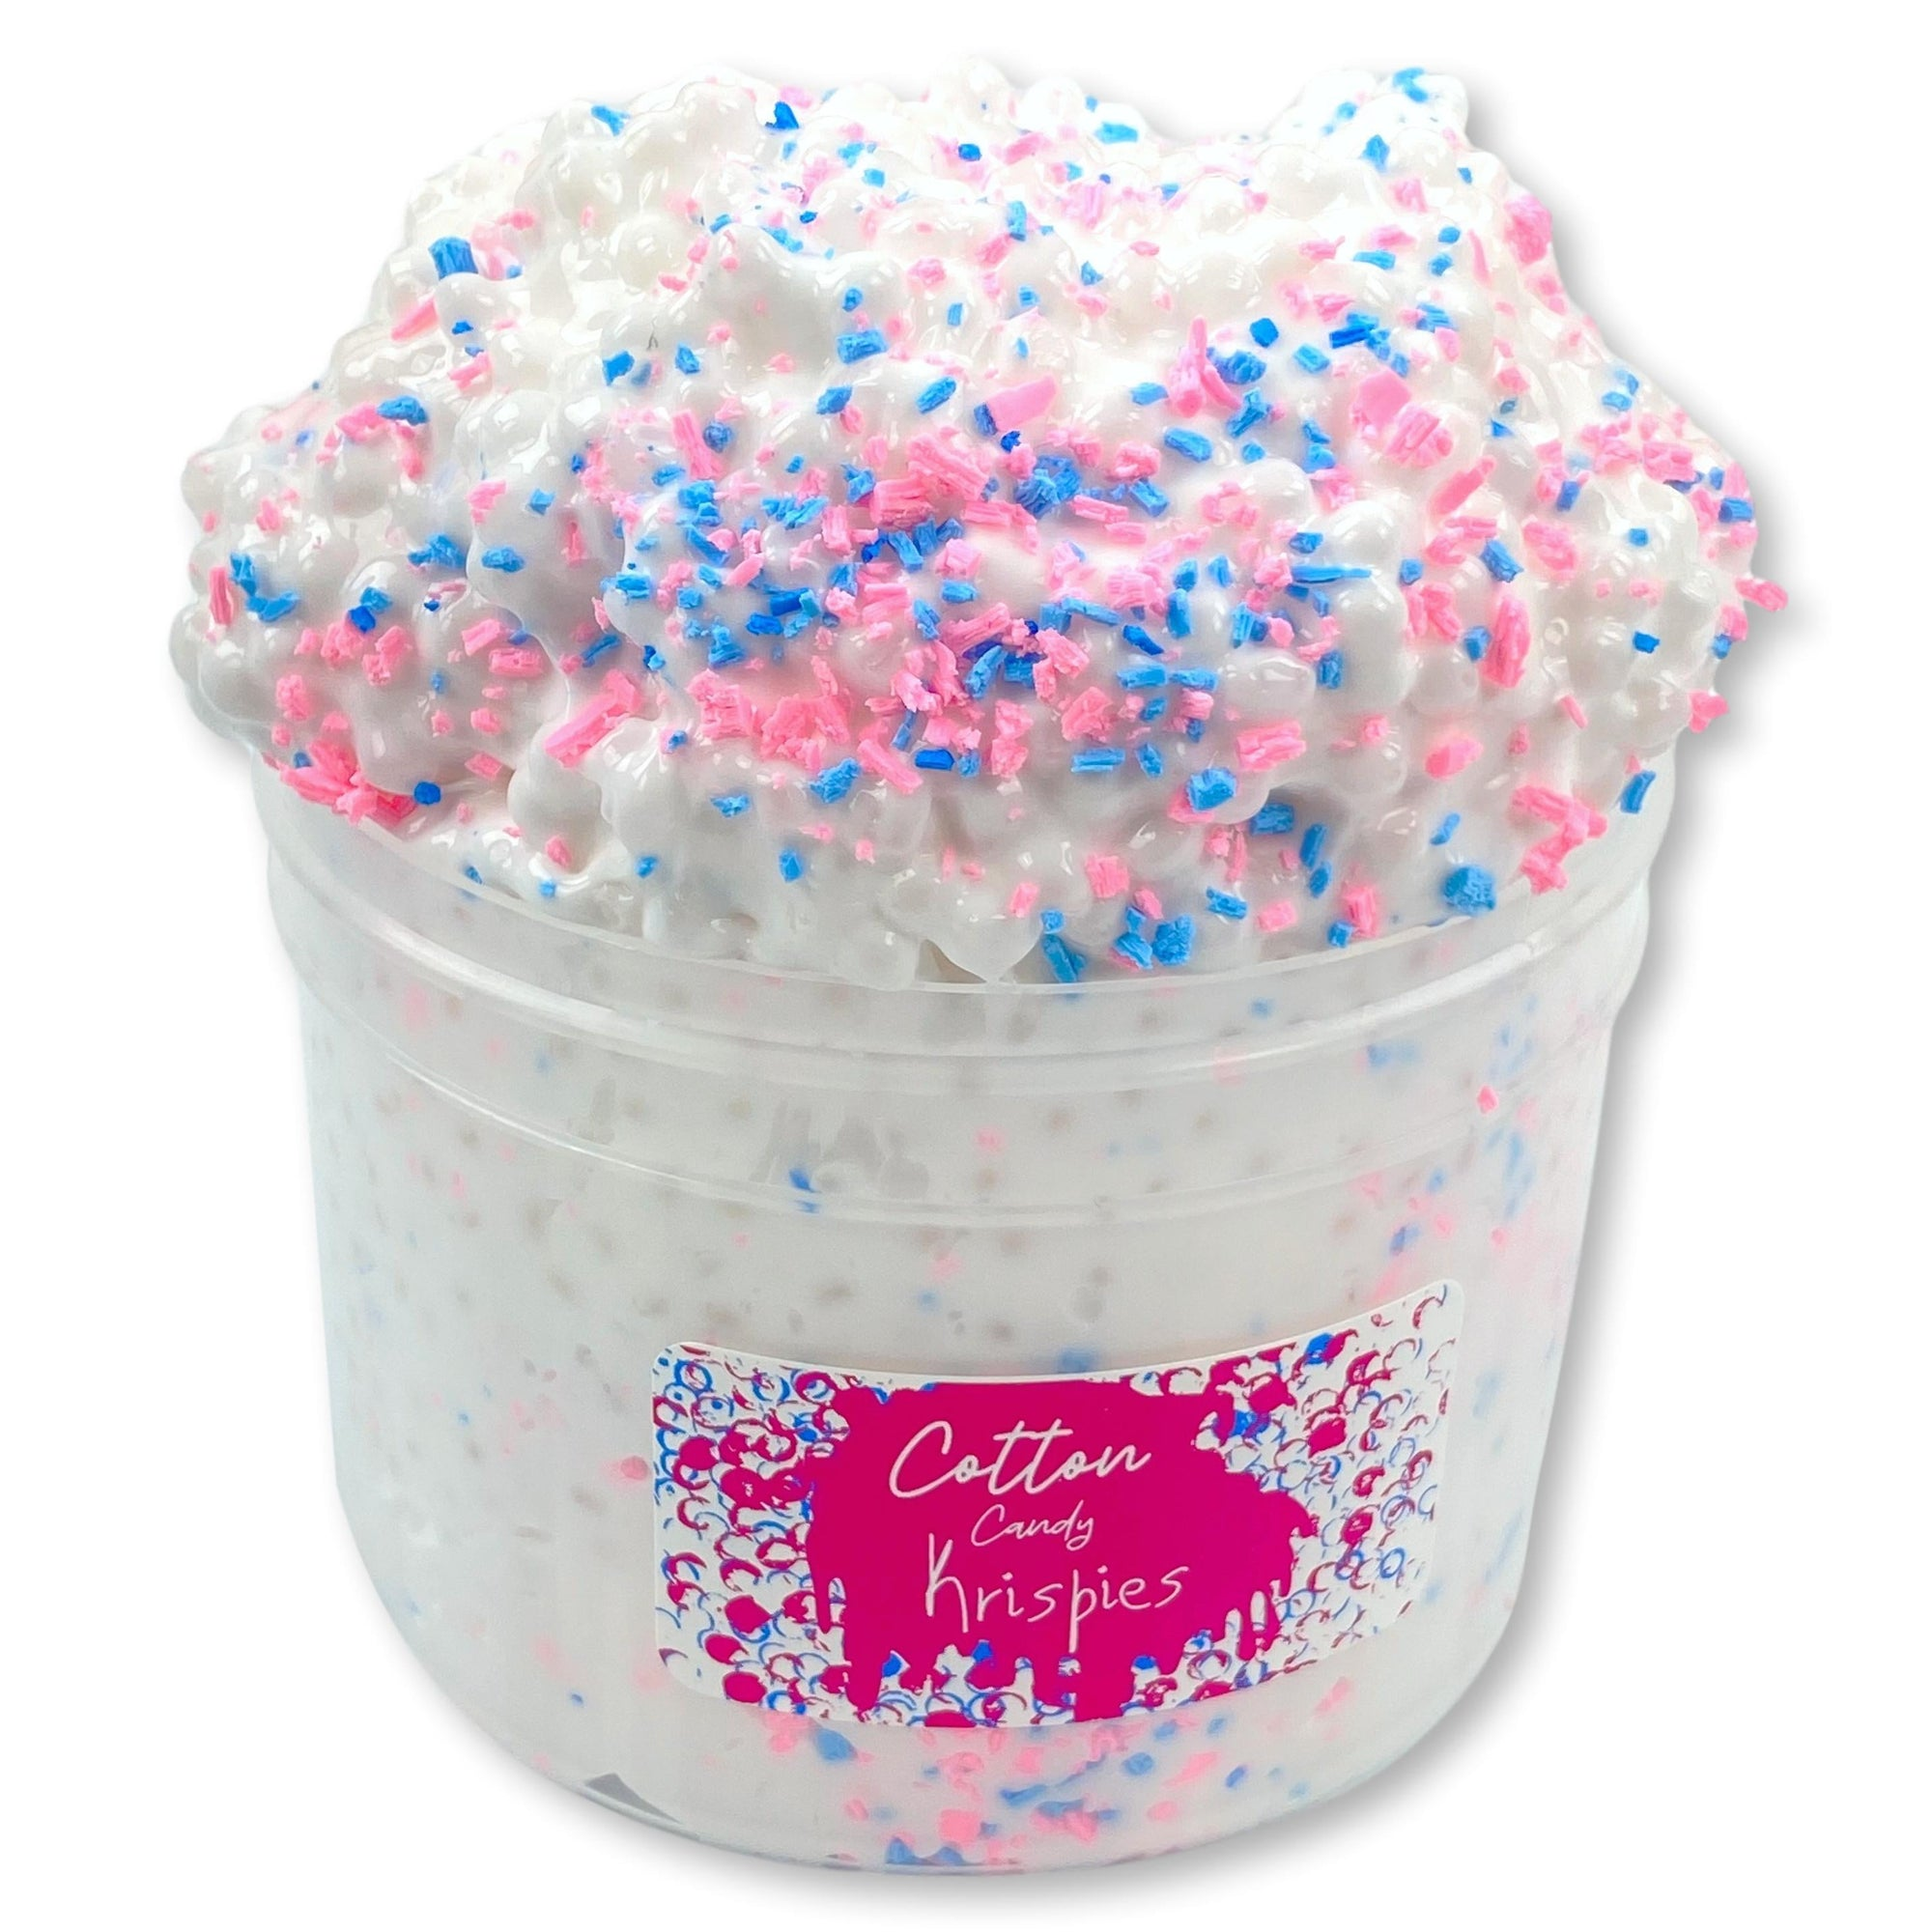 Cotton Candy Krispies Scented Slime - Shop Slime - Dope SlimesCotton Candy Krispies Scented Slime - Shop Slime - Dope Slimes